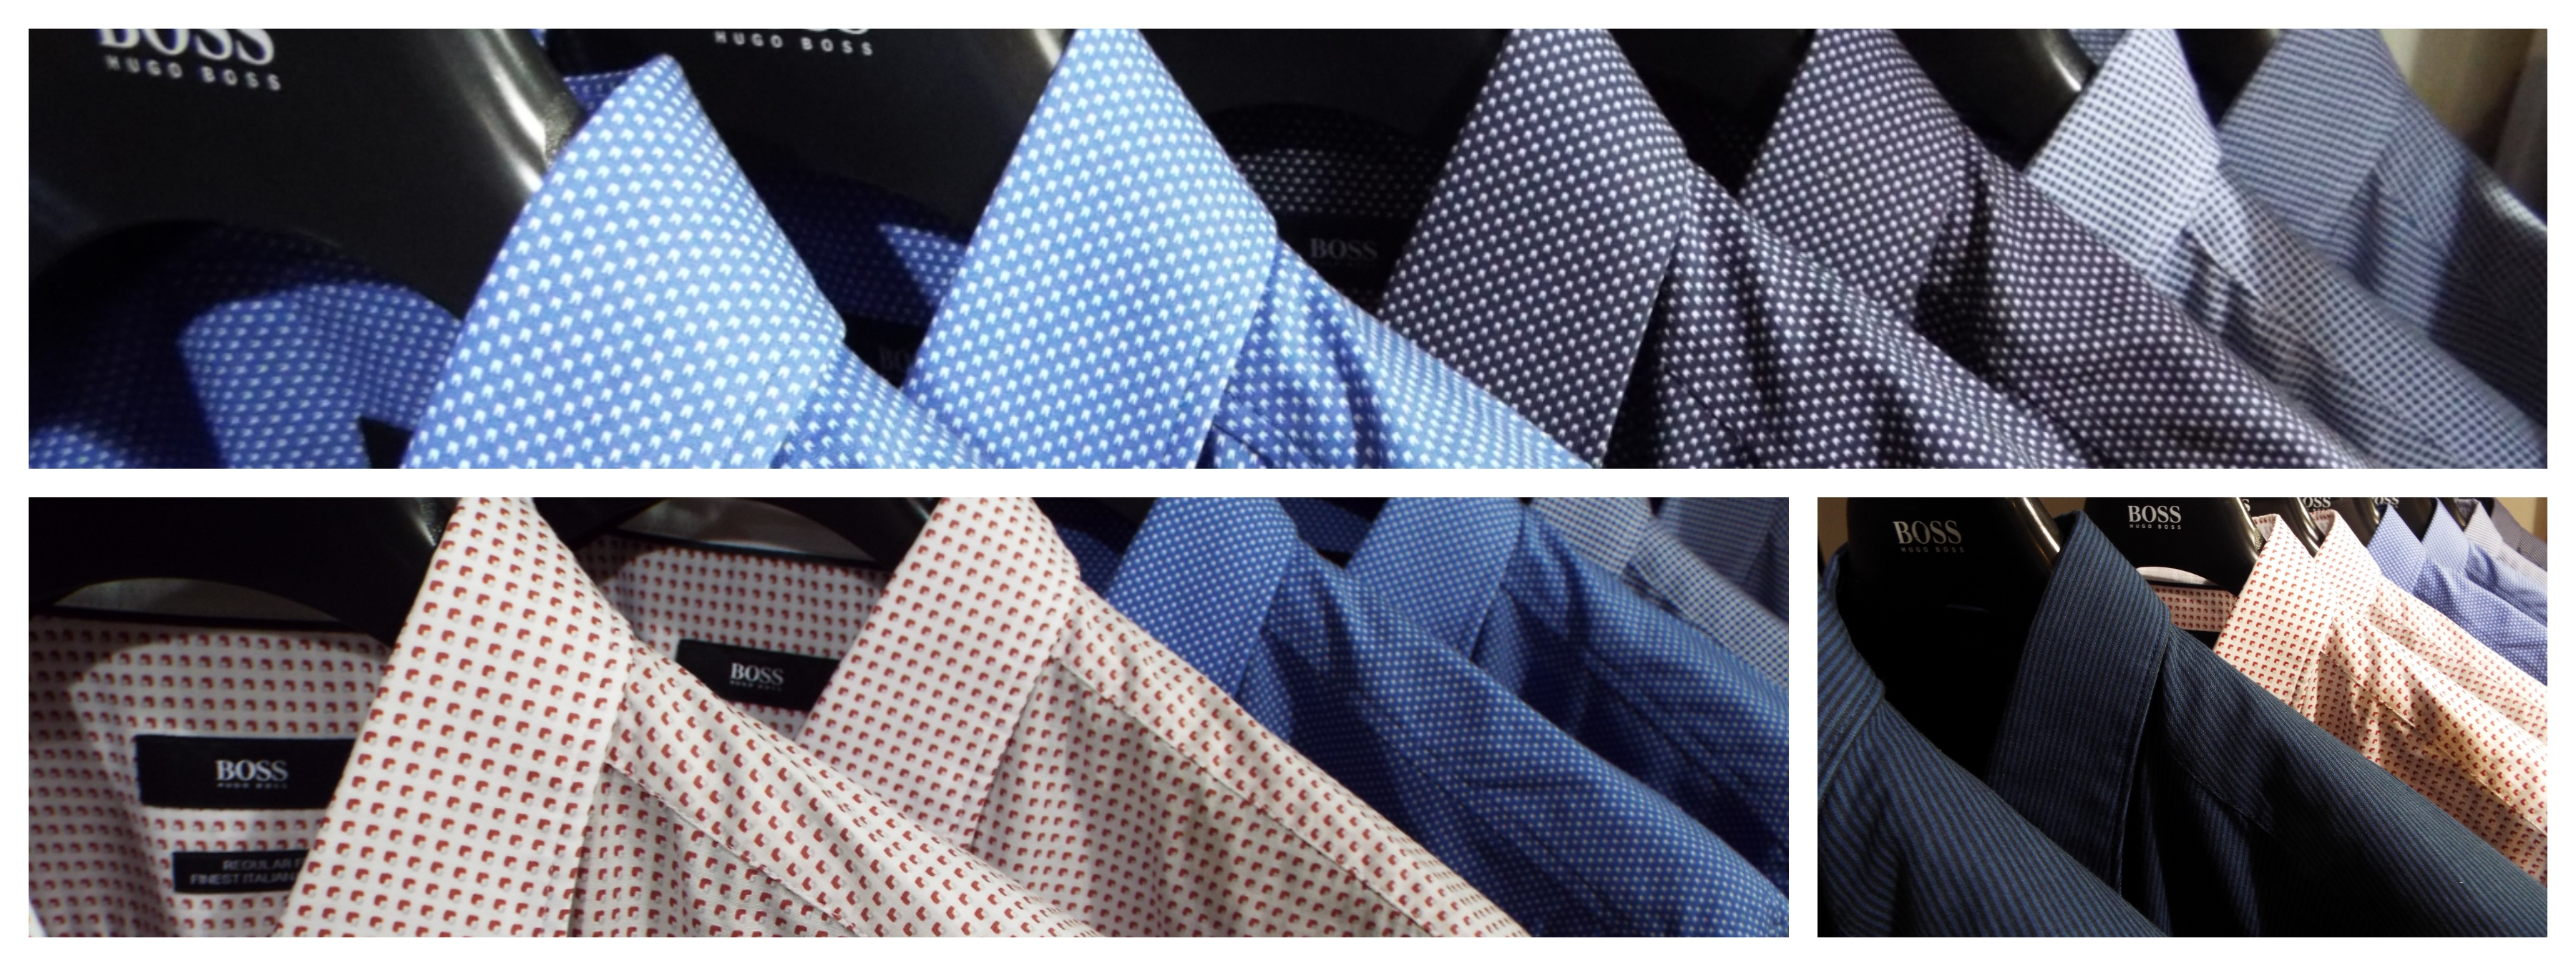 shirts collage